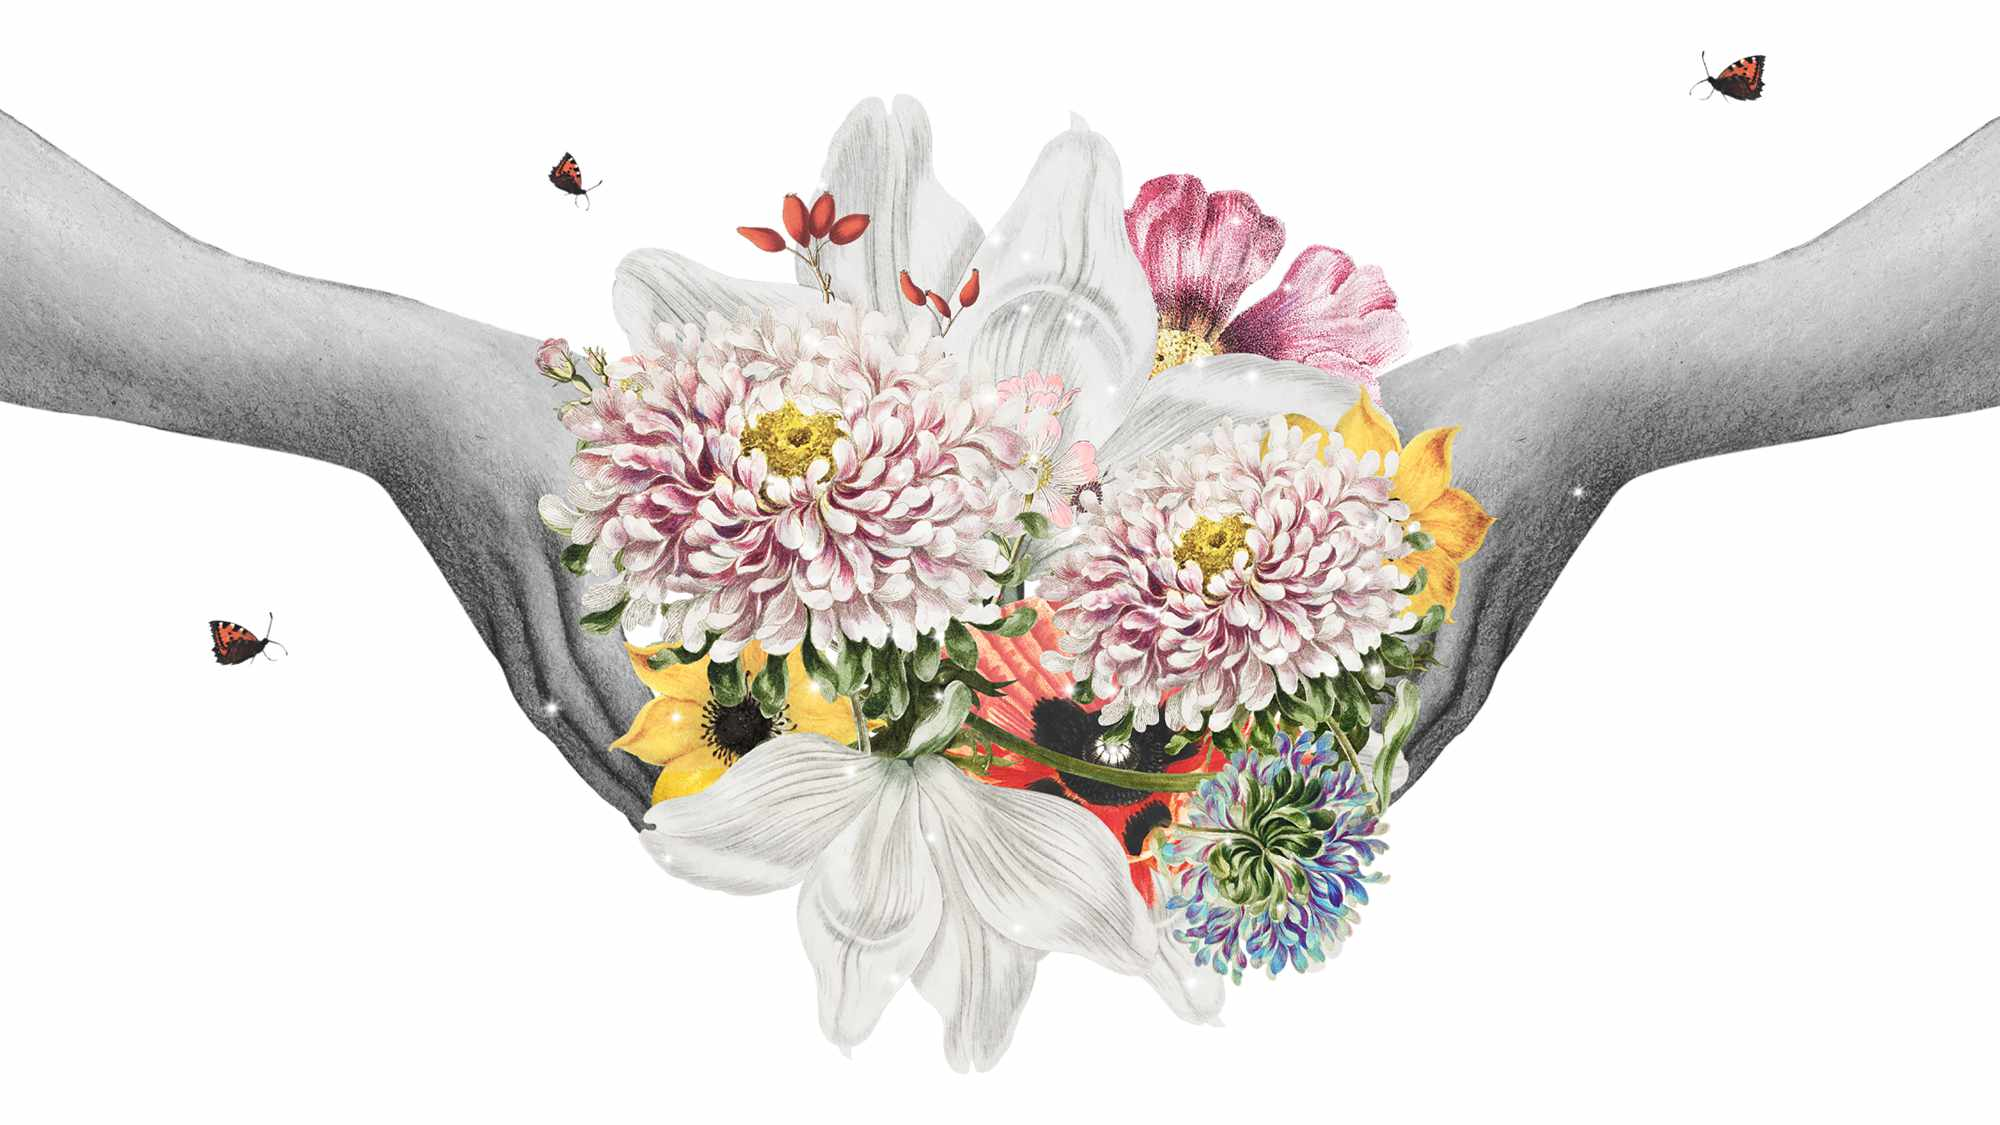 hands holding a collage bouquet